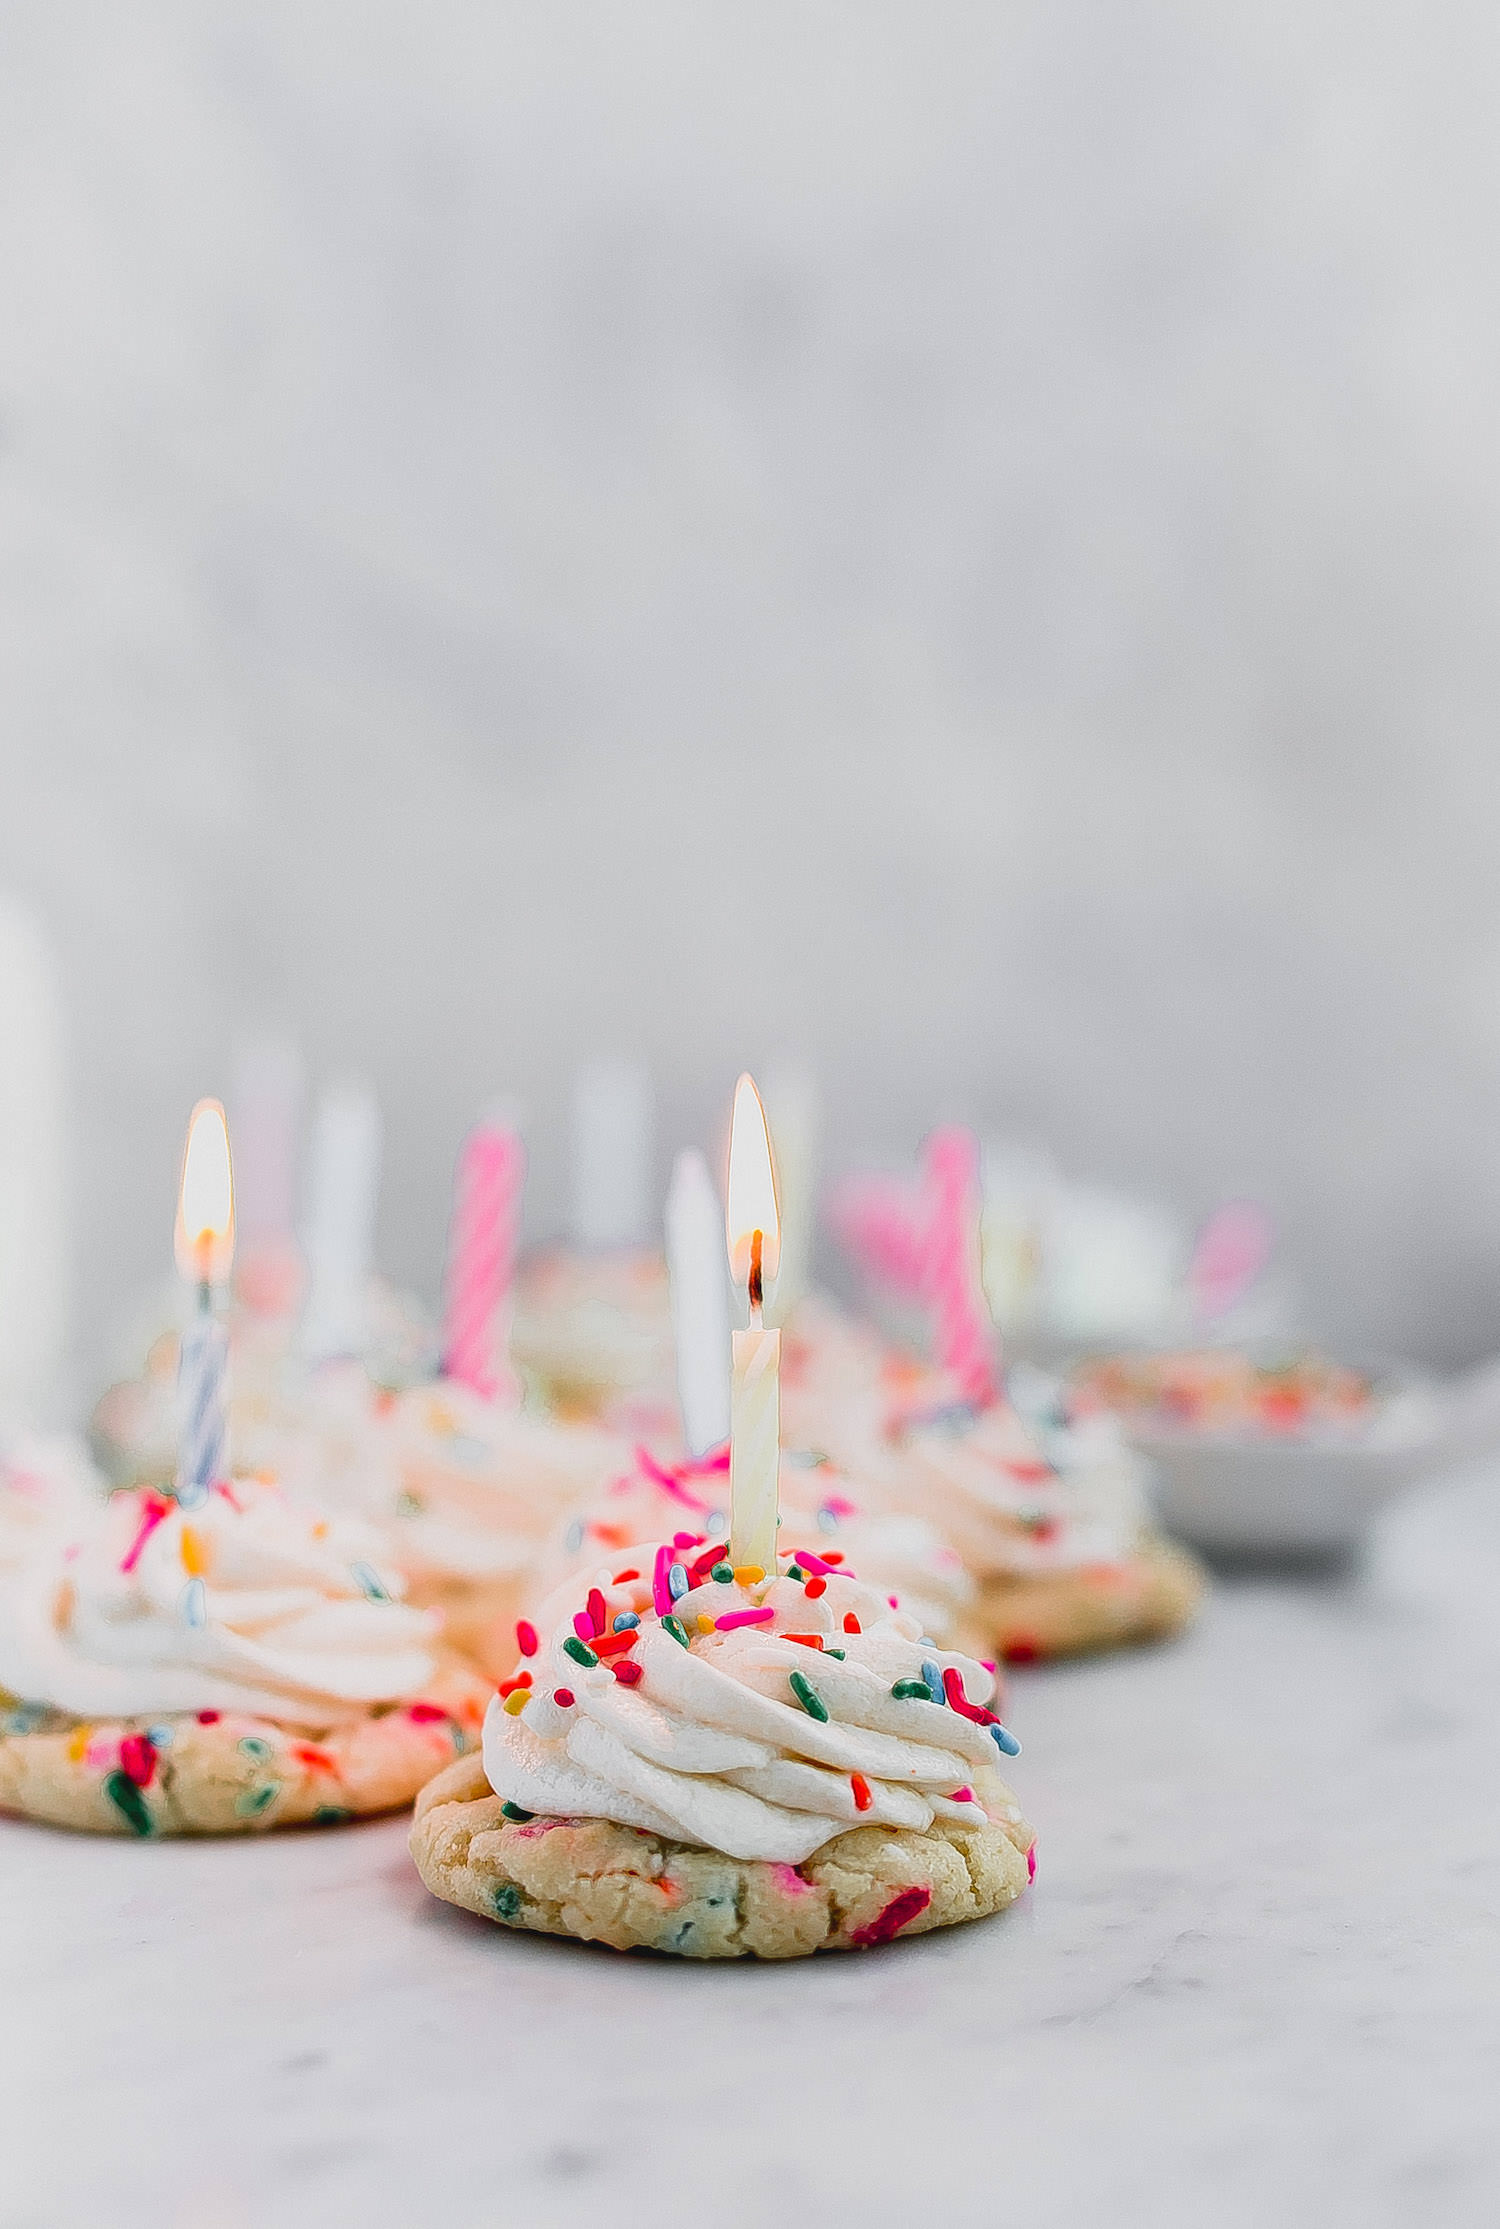 Funfetti Birthday Cookies: sot, chewy, rich, buttery sprinkle cookies topped with cream cheese frosting. Add a candle and you've got the ultimate birthday cookie! |TrufflesandTrends.com